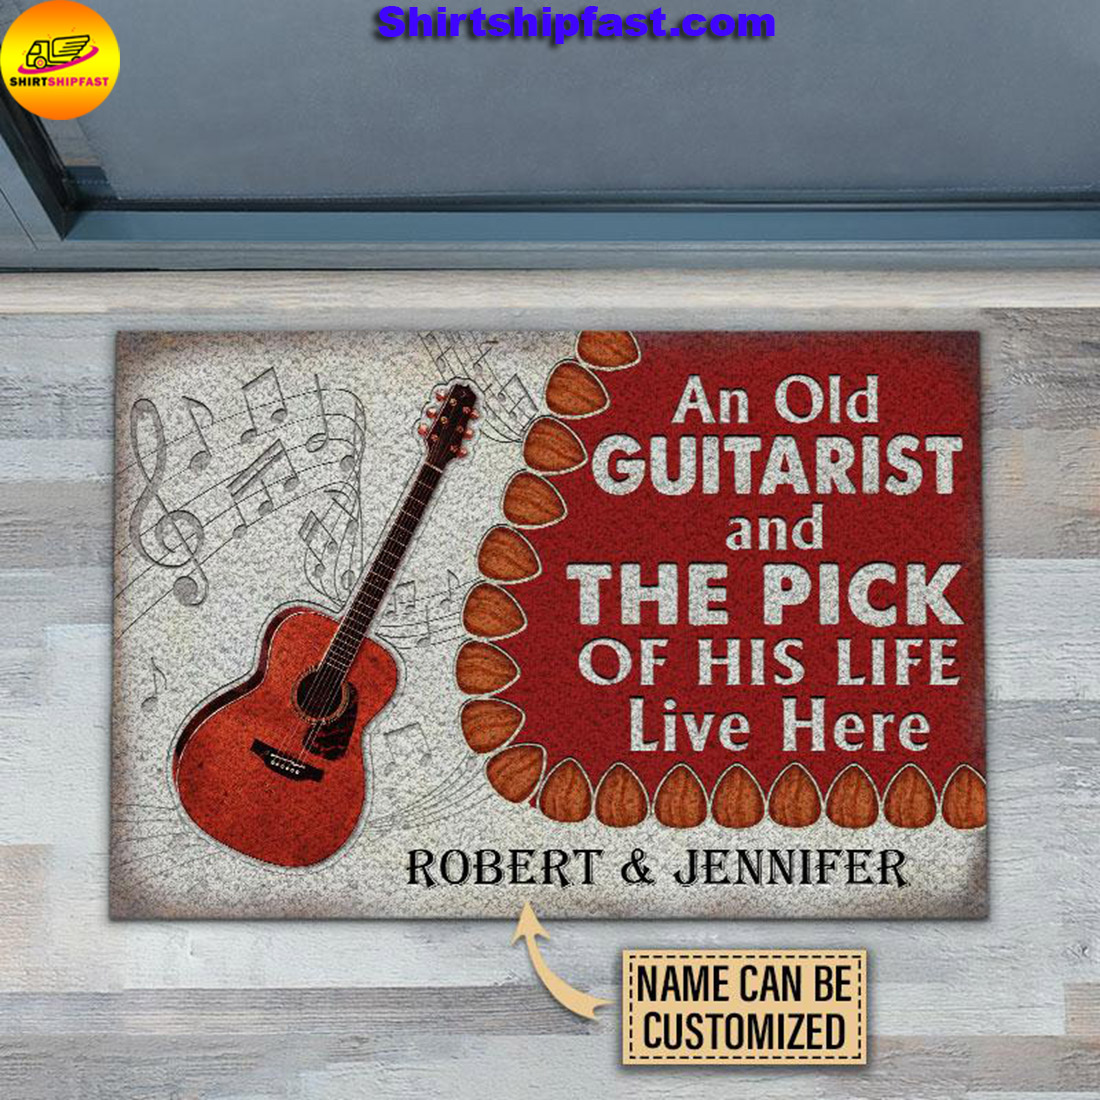 An old guitarist and the pick of his life live here custom name doormat